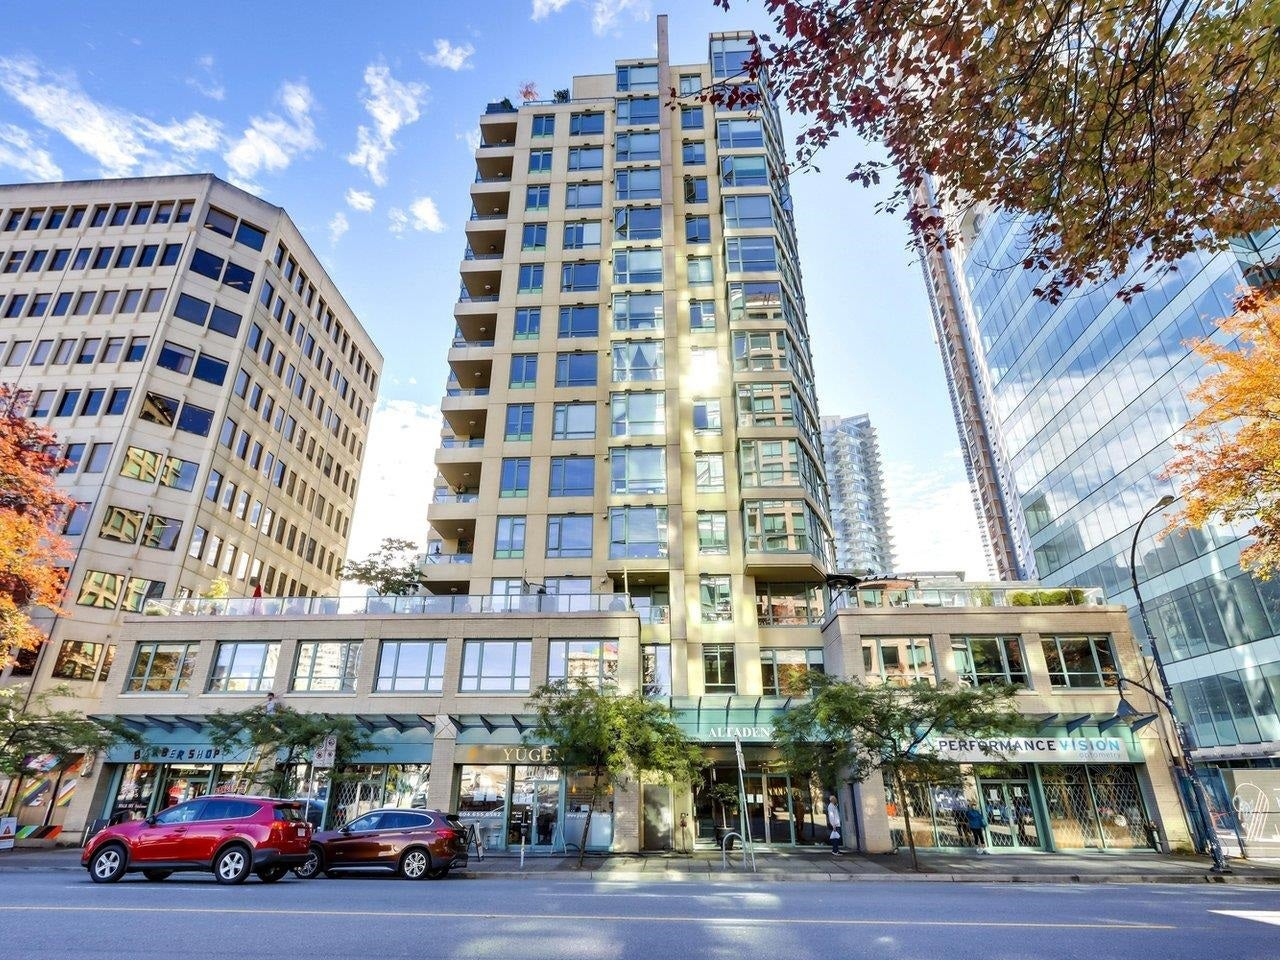 1304 1238 BURRARD STREET - Downtown VW Apartment/Condo for sale, 2 Bedrooms (R2620701) - #1